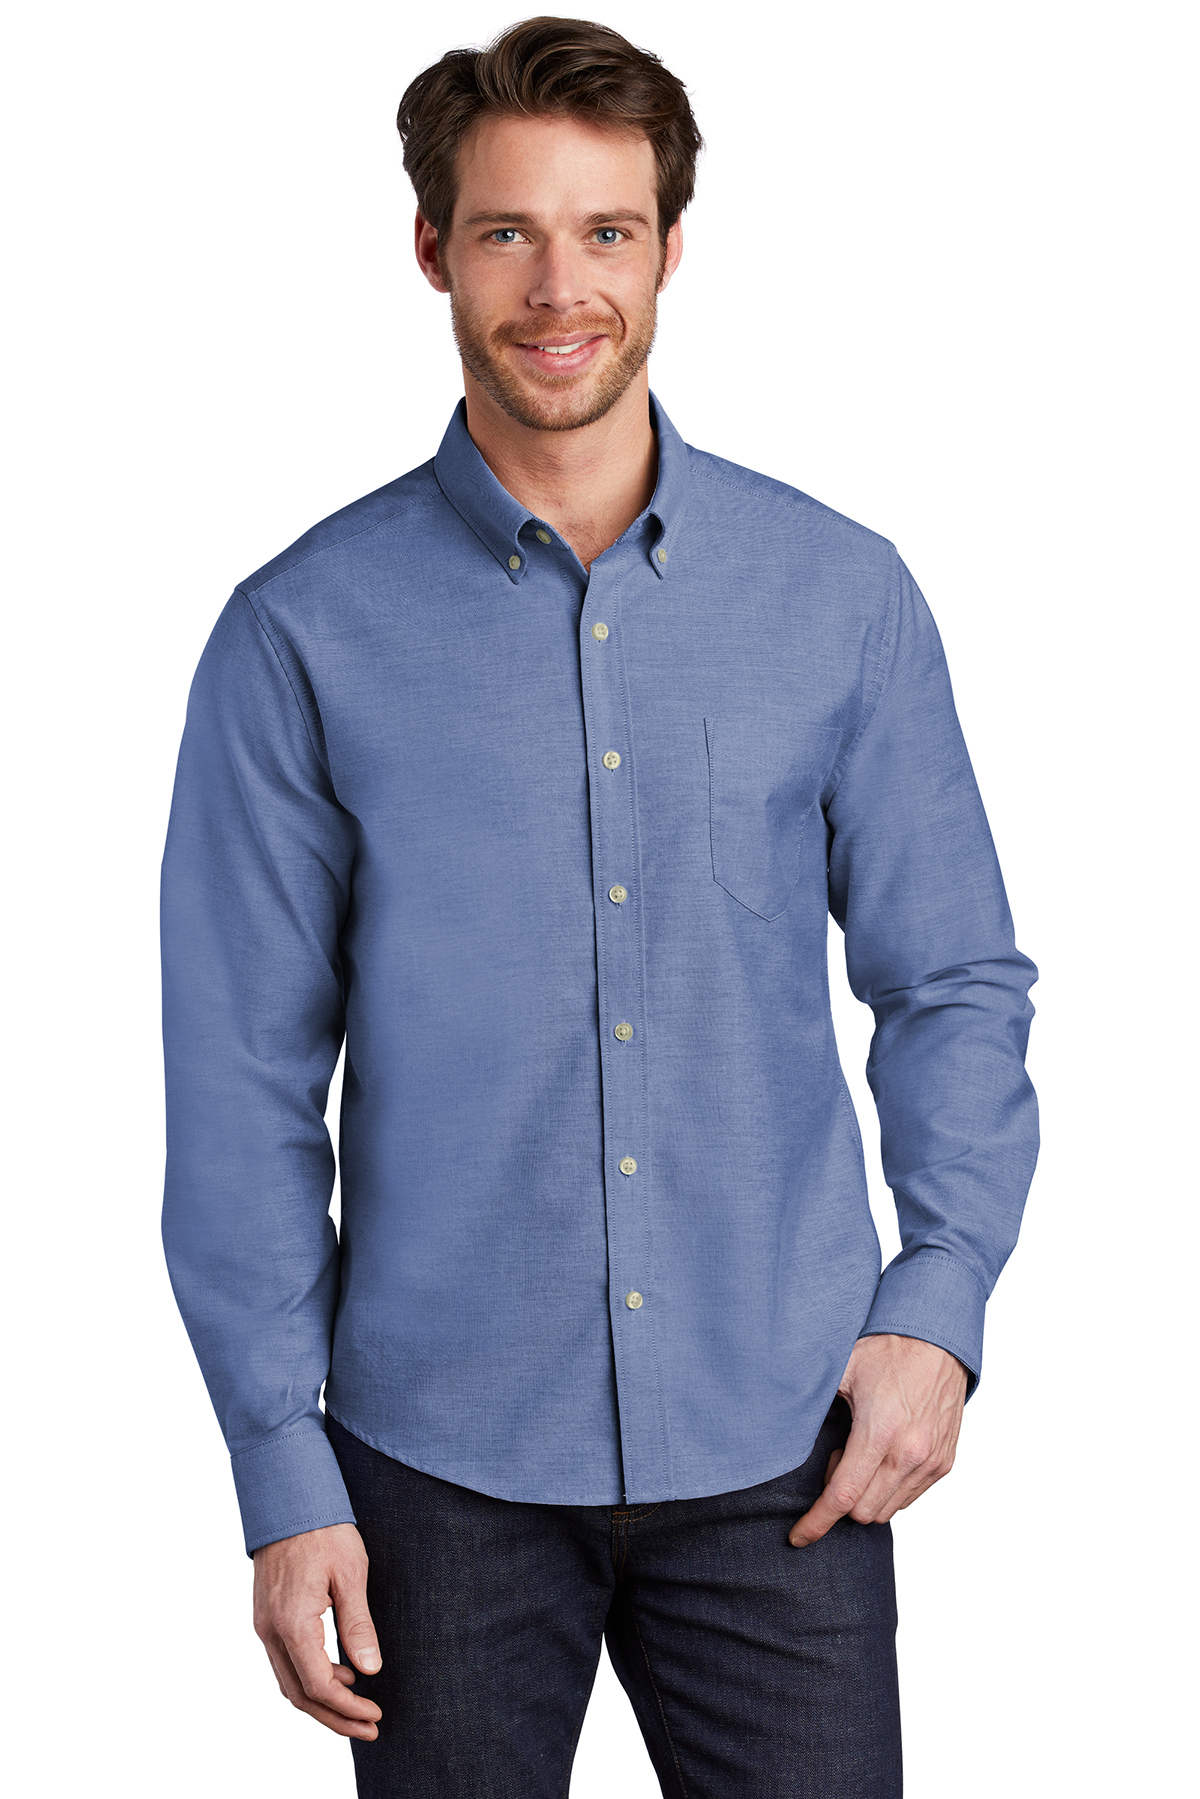 Port Authority S651 - Untucked Fit SuperPro Oxford Shirt